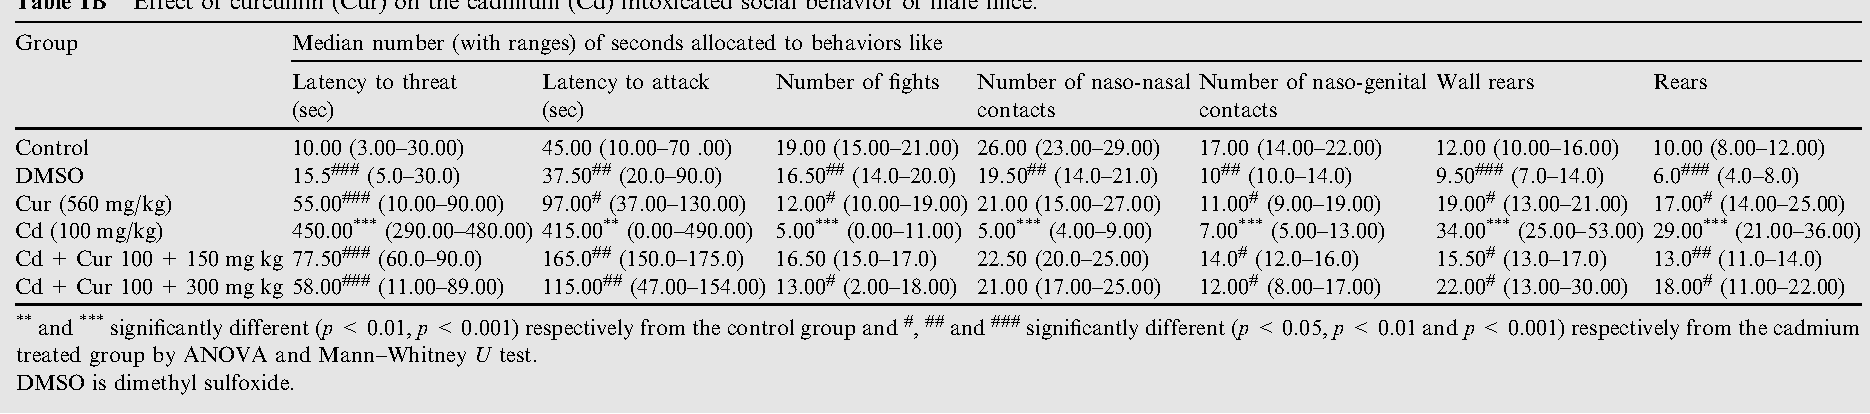 Table 1B Effect of curcumin (Cur) on the cadmium (Cd) intoxicated social behavior of male mice.